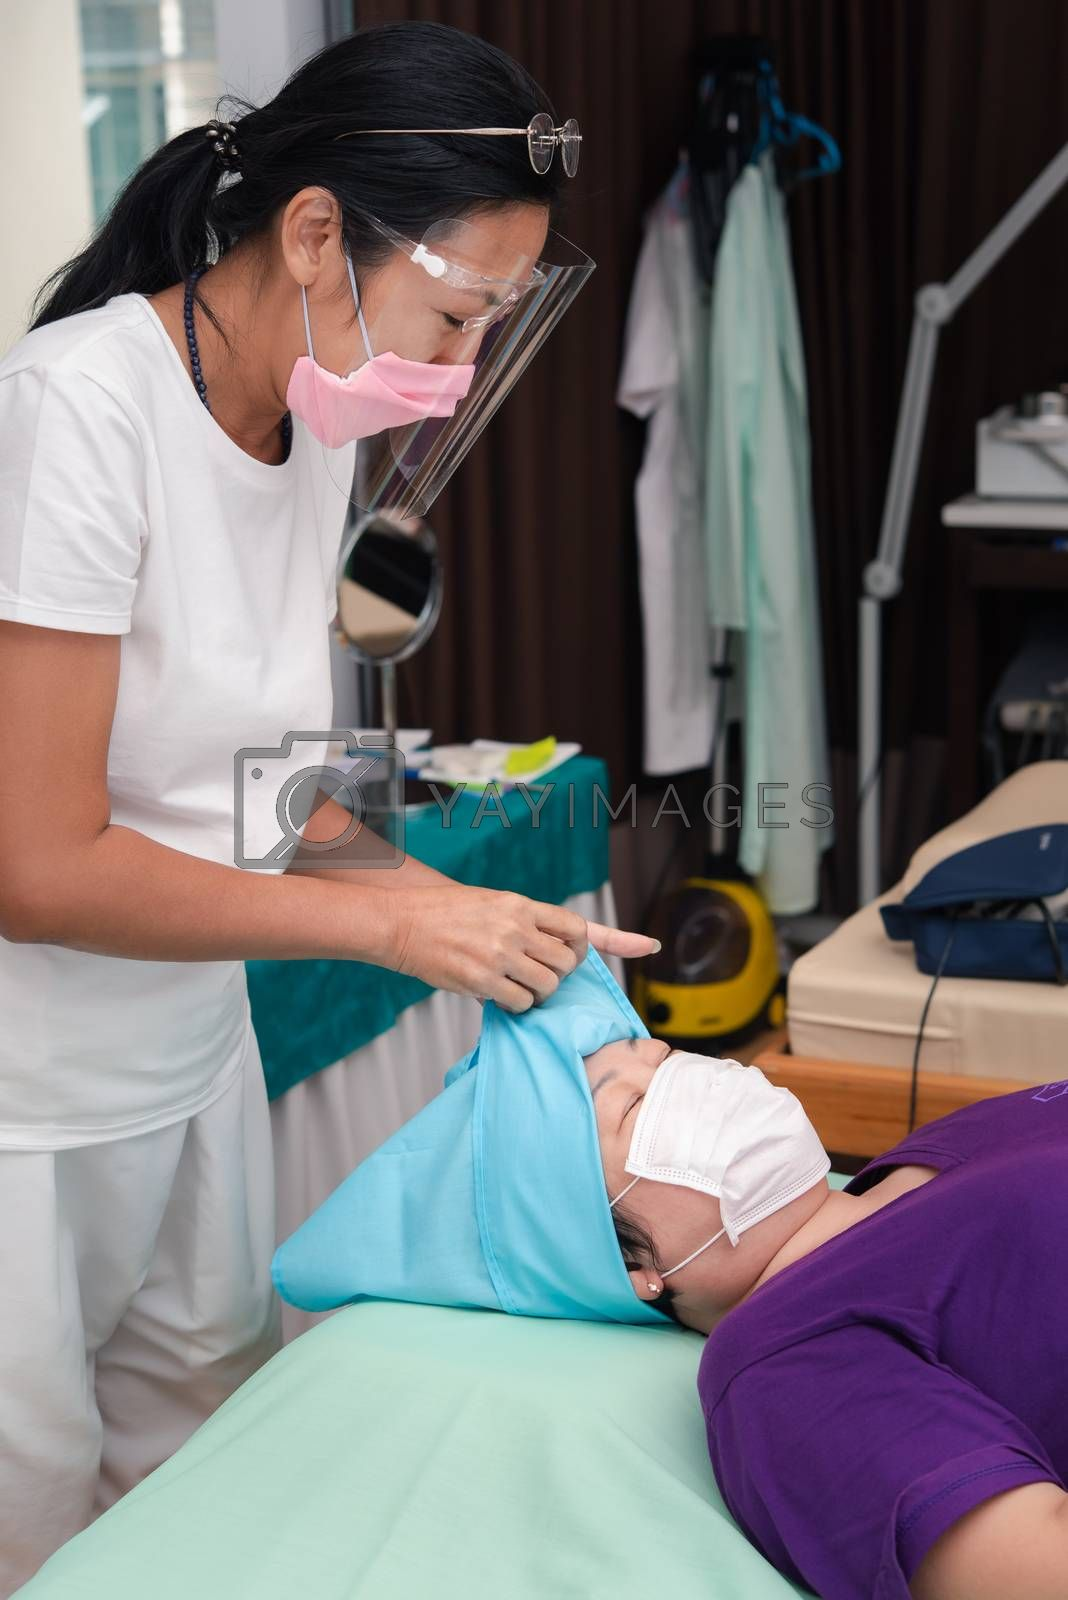 Bangkok, Thailand - May 30, 2020 : Unidentified Asian woman eyebrow tattooing by specialist in Eyebrow tattoo or embroidery clinic use COVID-19 prevention policy protect by use mask and face shield